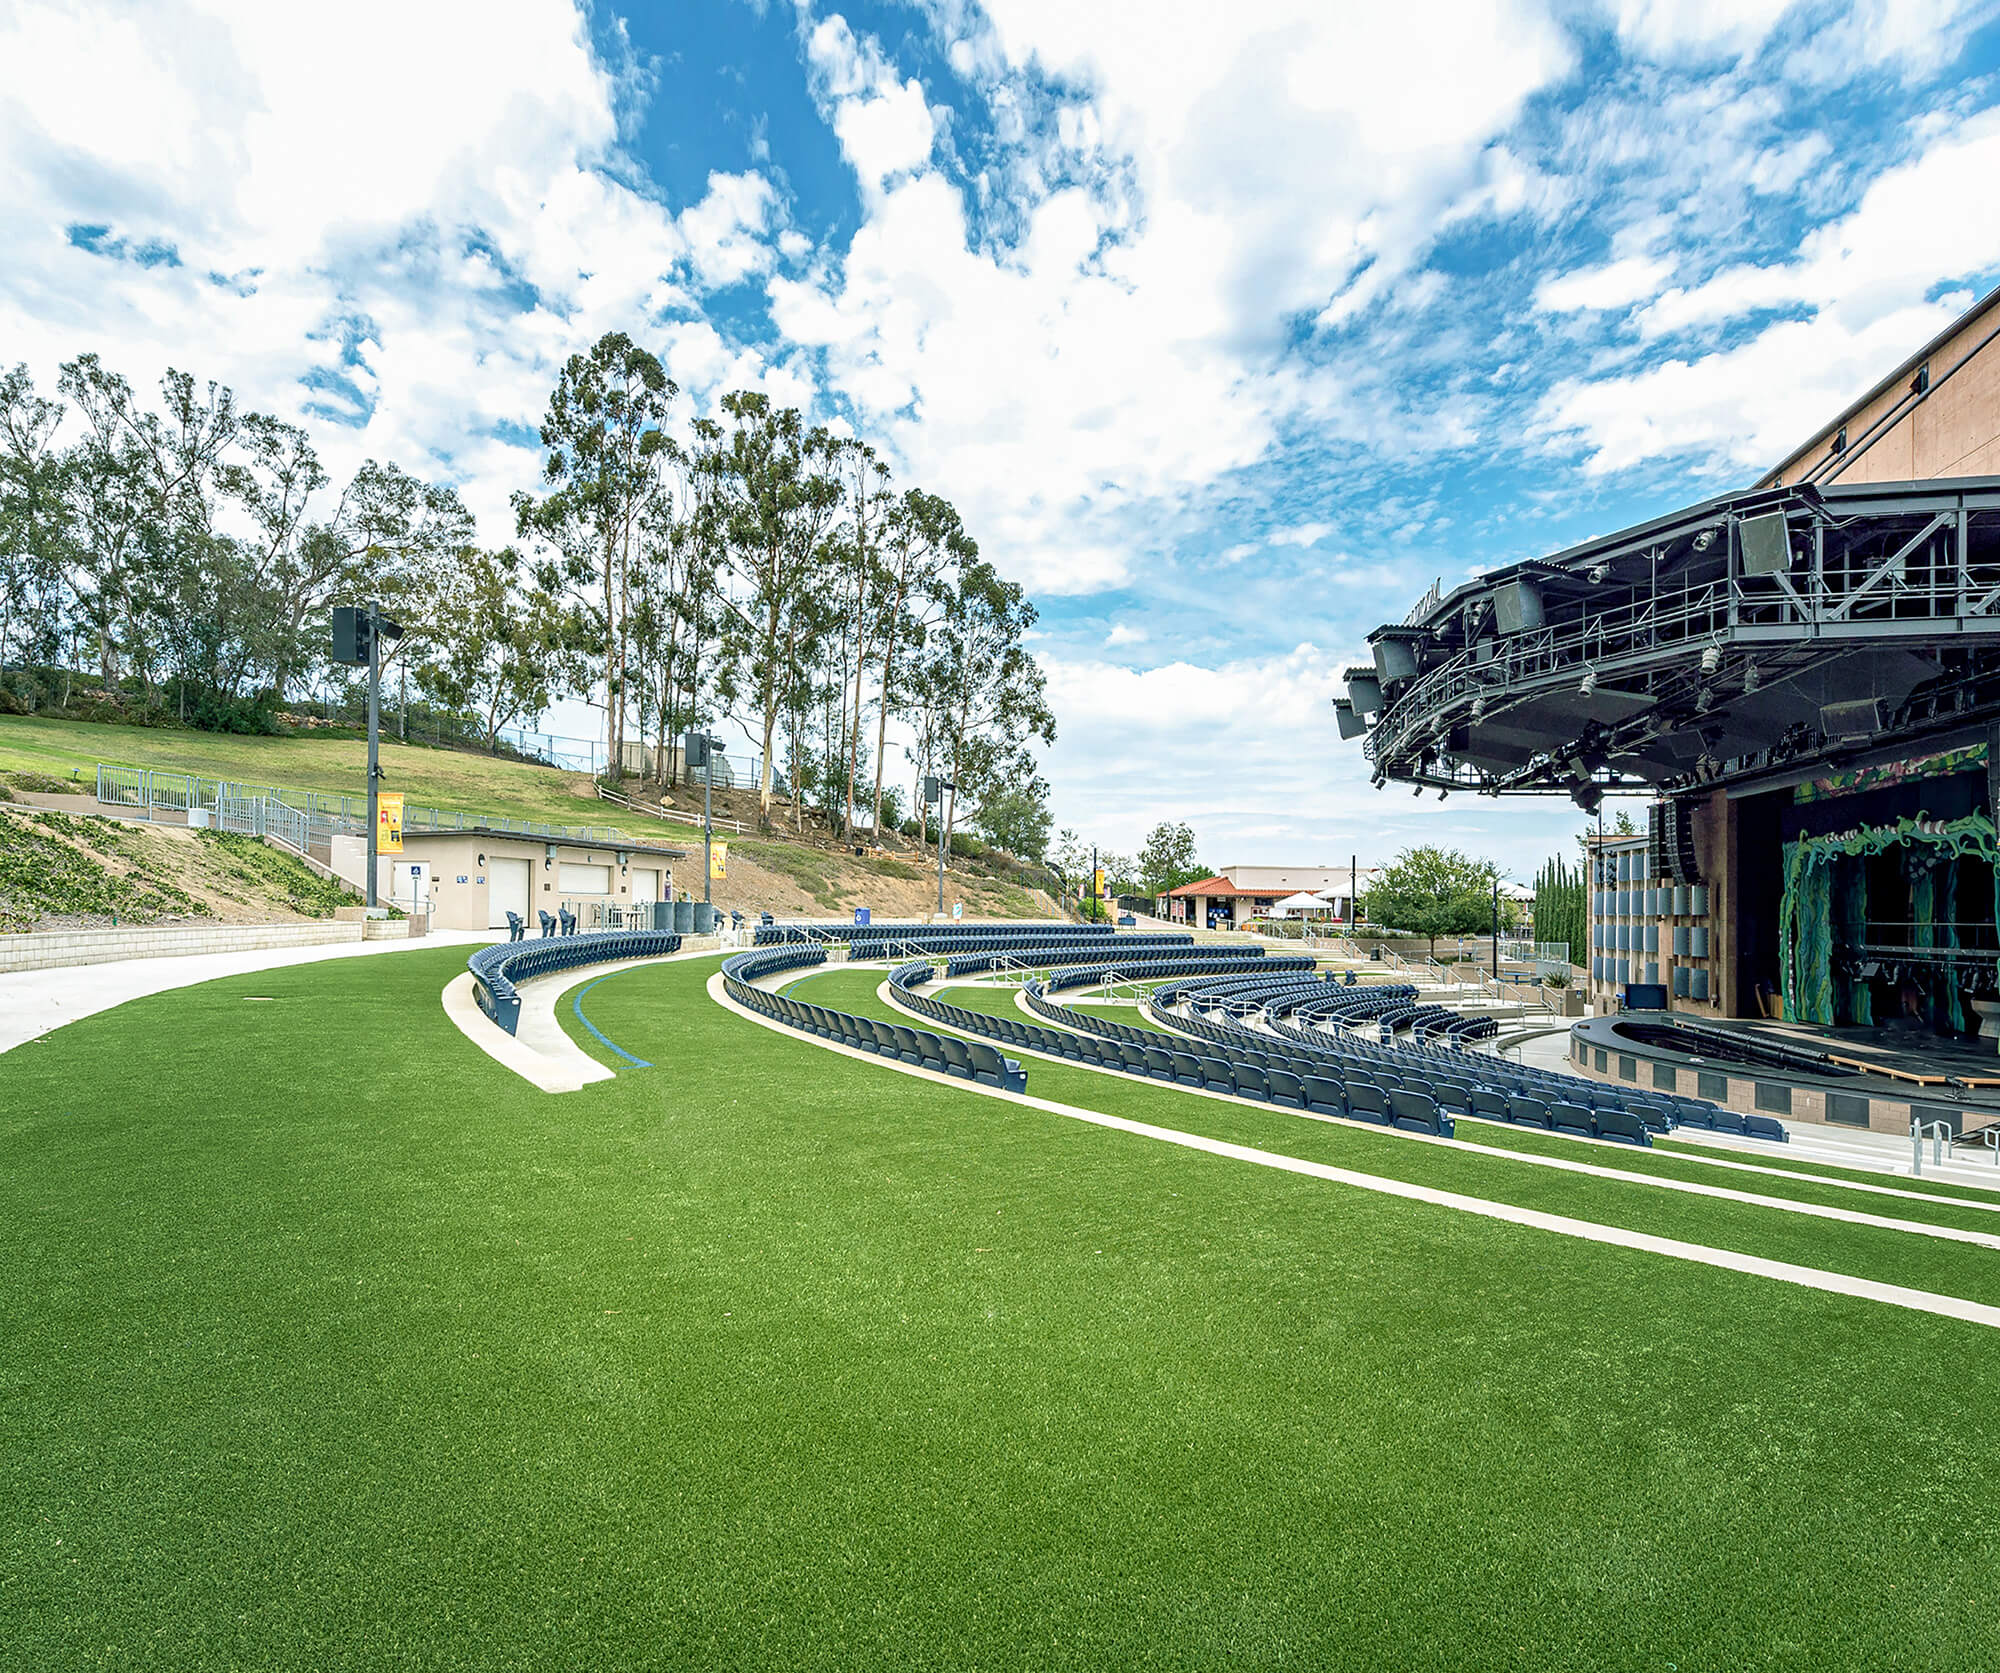 Outdoor amphitheater with turf surfacing